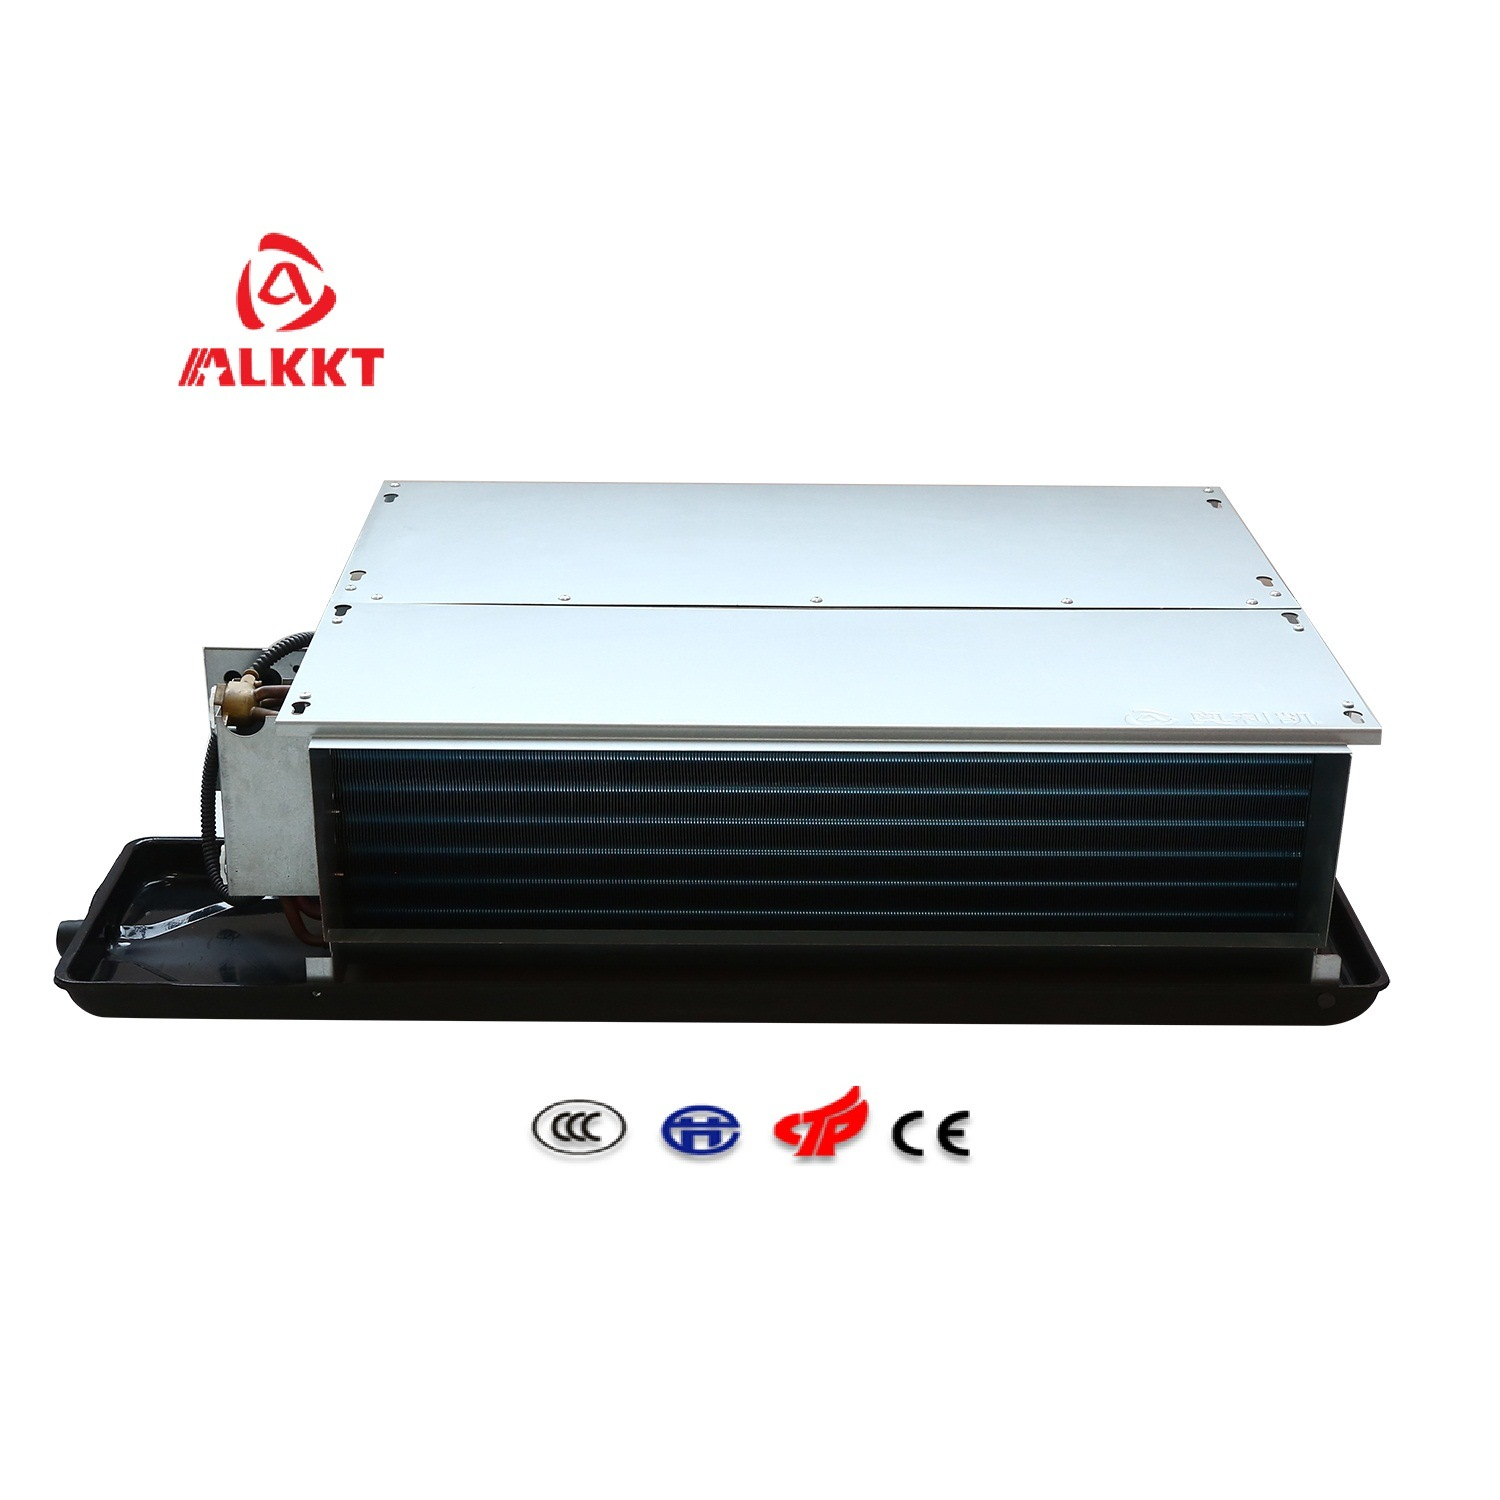 China AC System Horizontal Chilled Water Ceiling Concealed